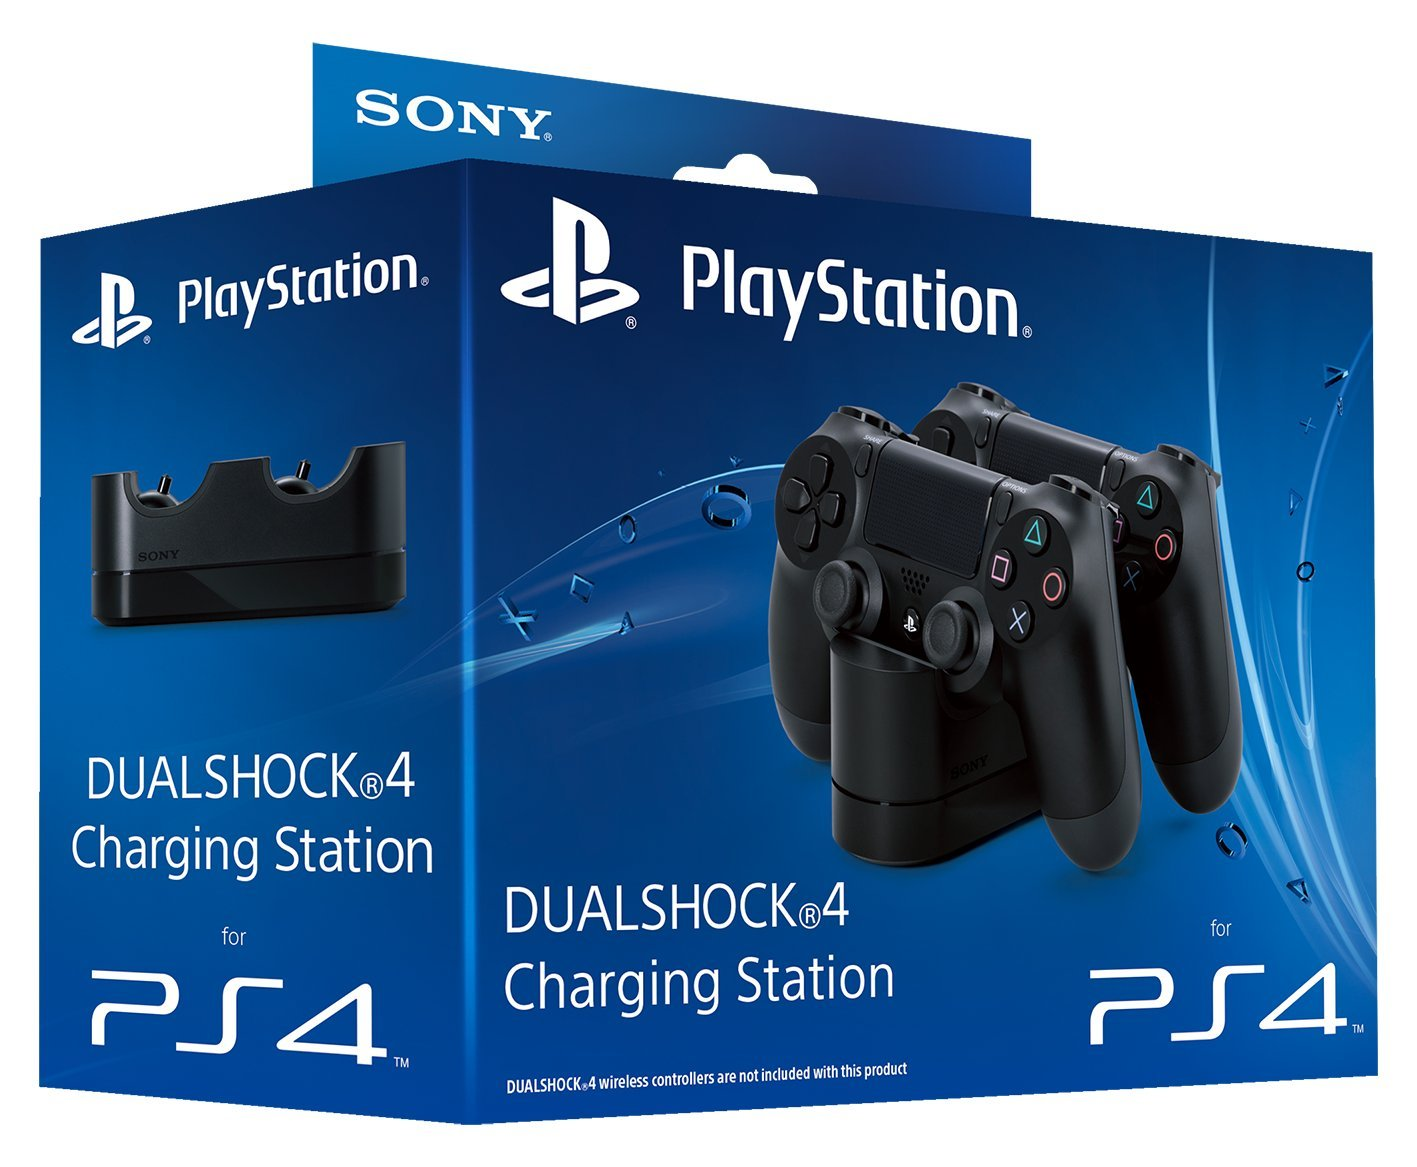 sony ps4. sony playstation dualshock 4 charging station (ps4): amazon.co.uk: pc \u0026 video games ps4 e